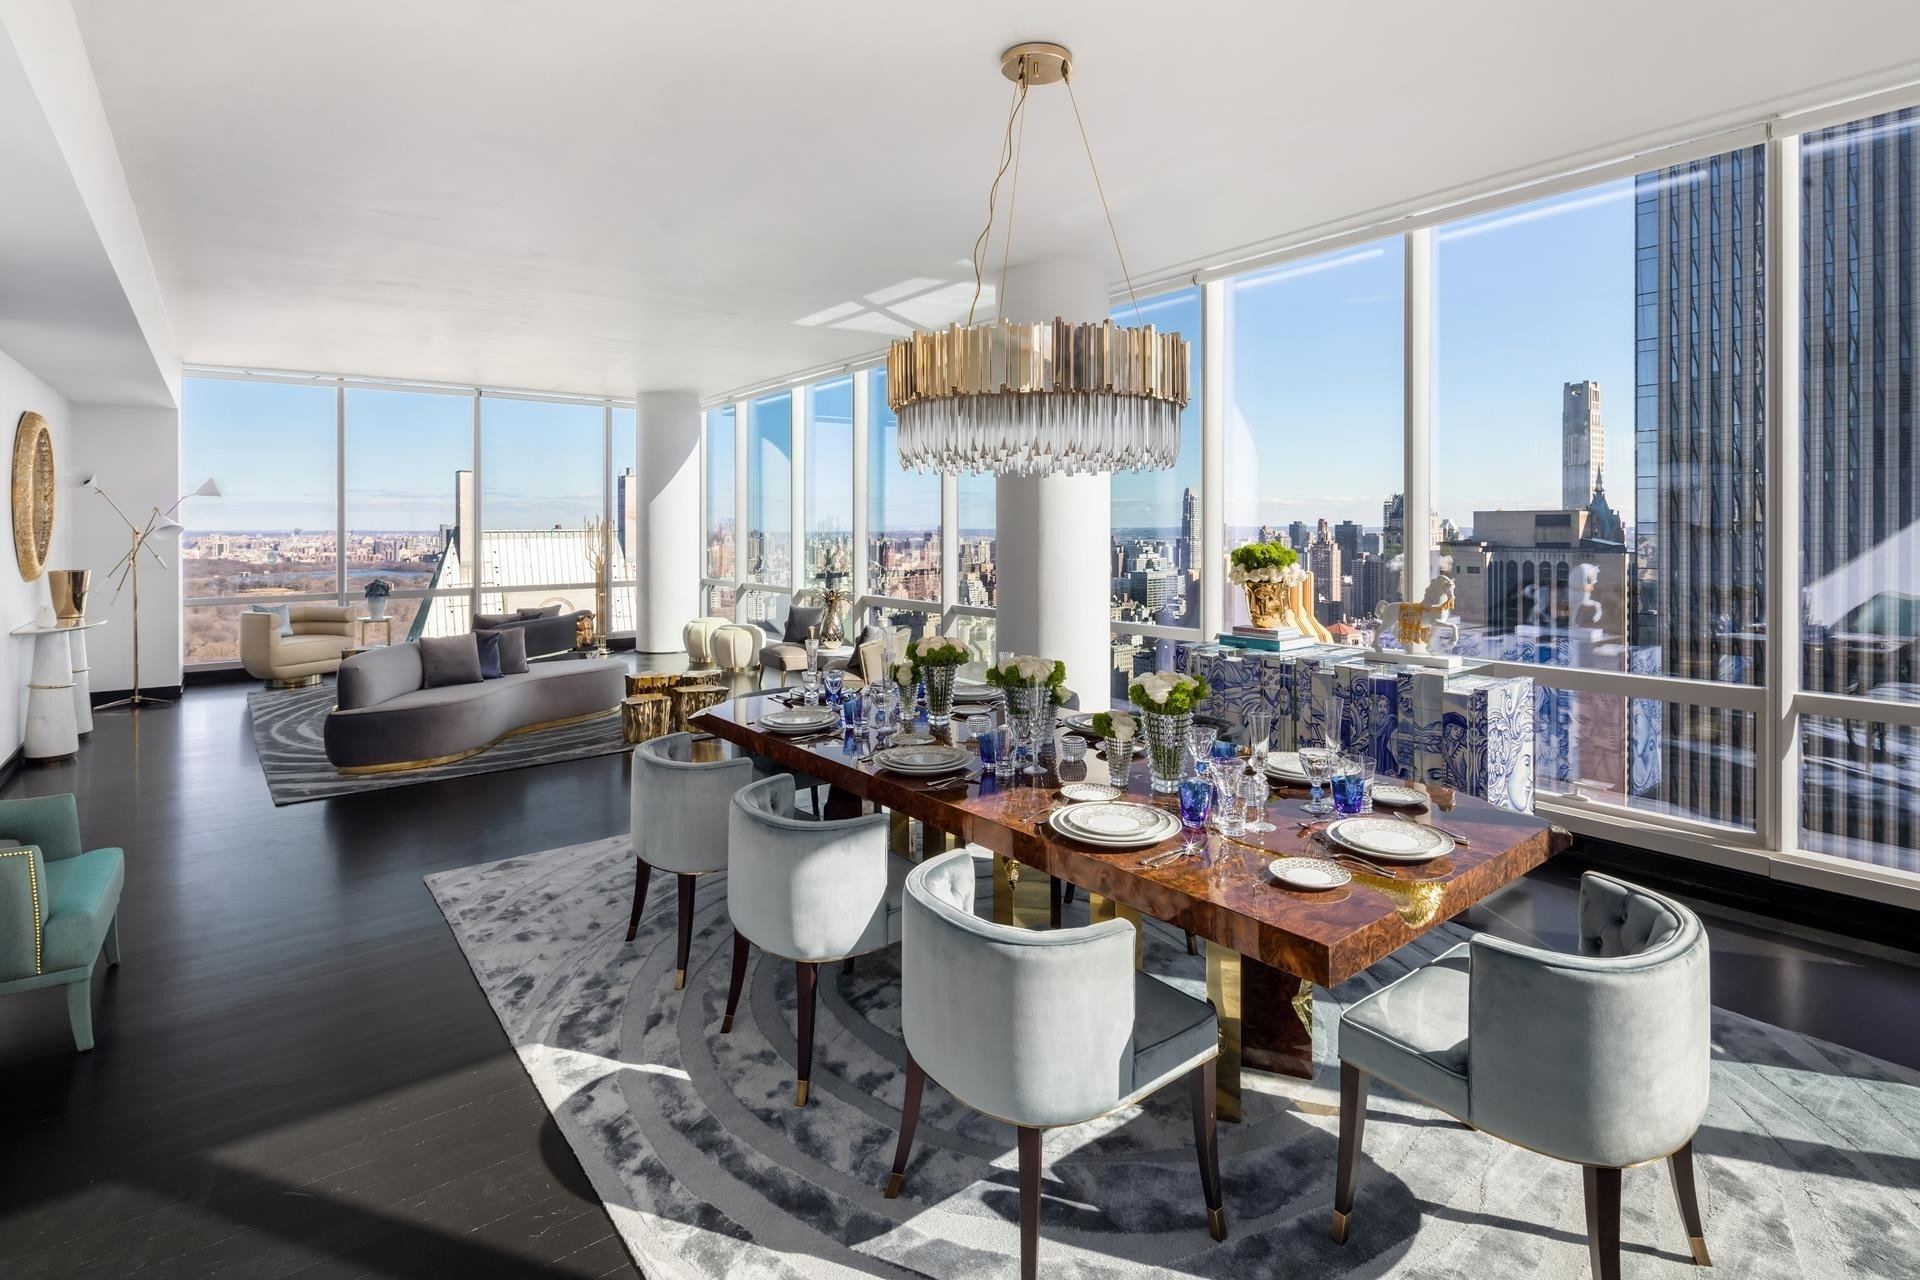 4. Condominiums for Sale at One57, 157 West 57th St, 45C Midtown West, New York, NY 10019